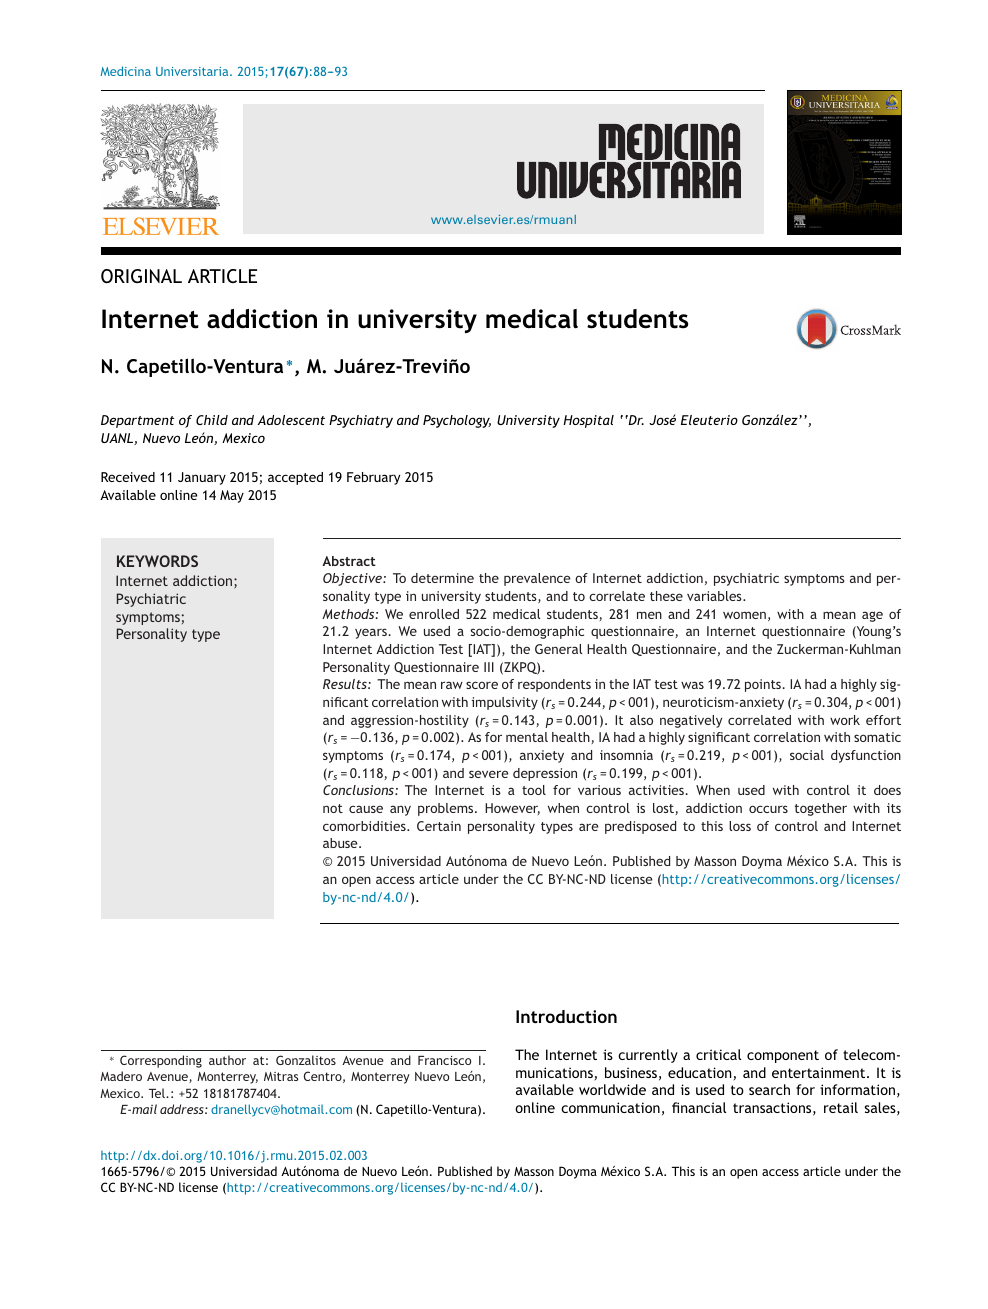 Internet addiction in university medical students – topic of